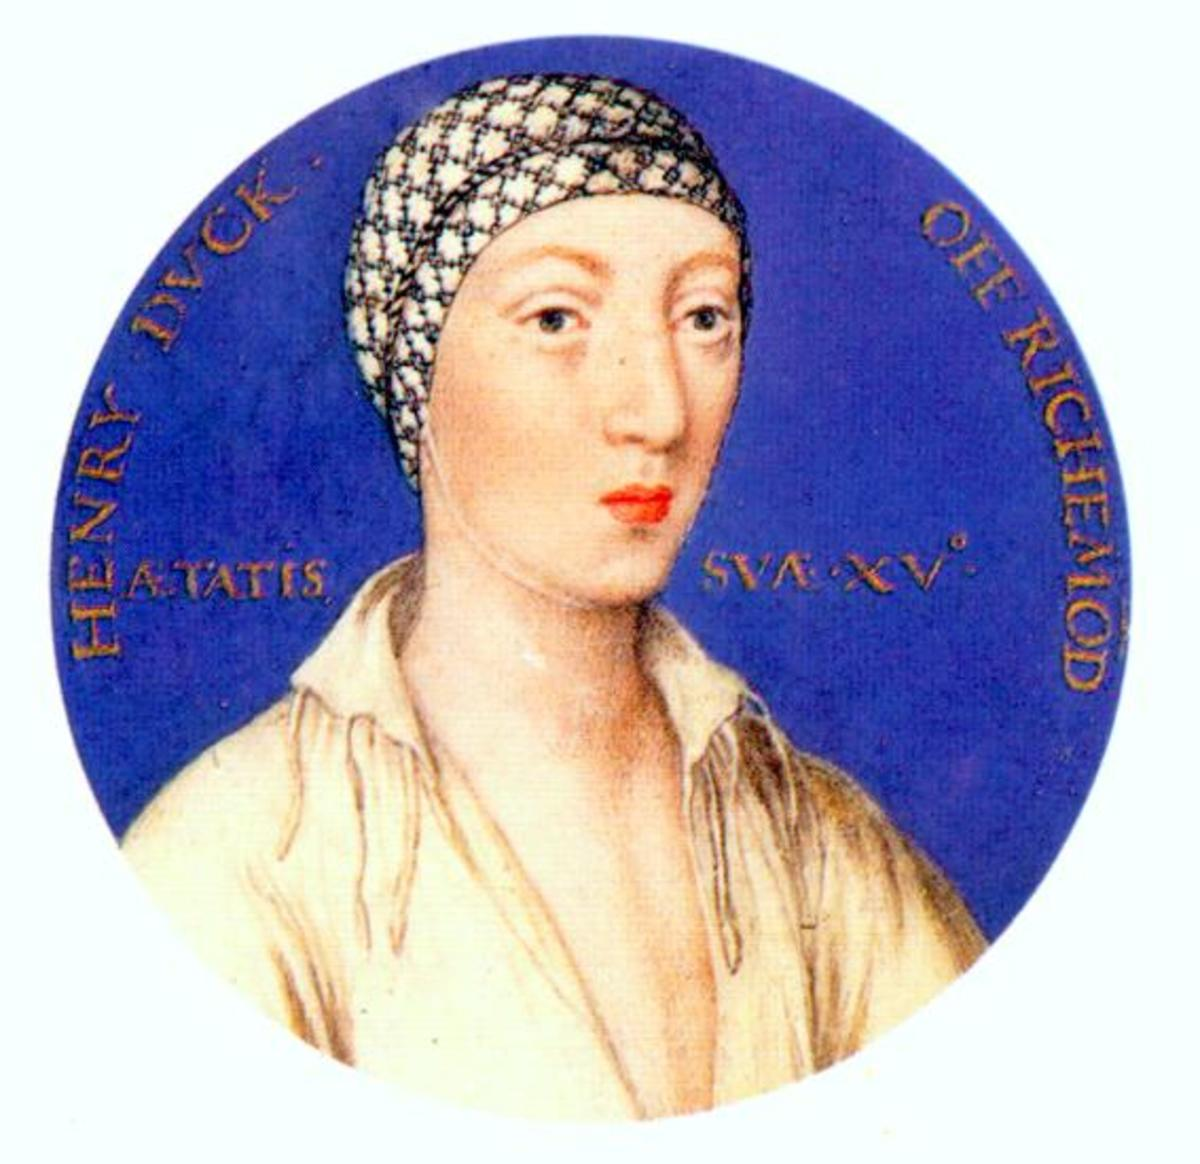 The Death of Henry FitzRoy: Henry VIII's Illegitimate Son